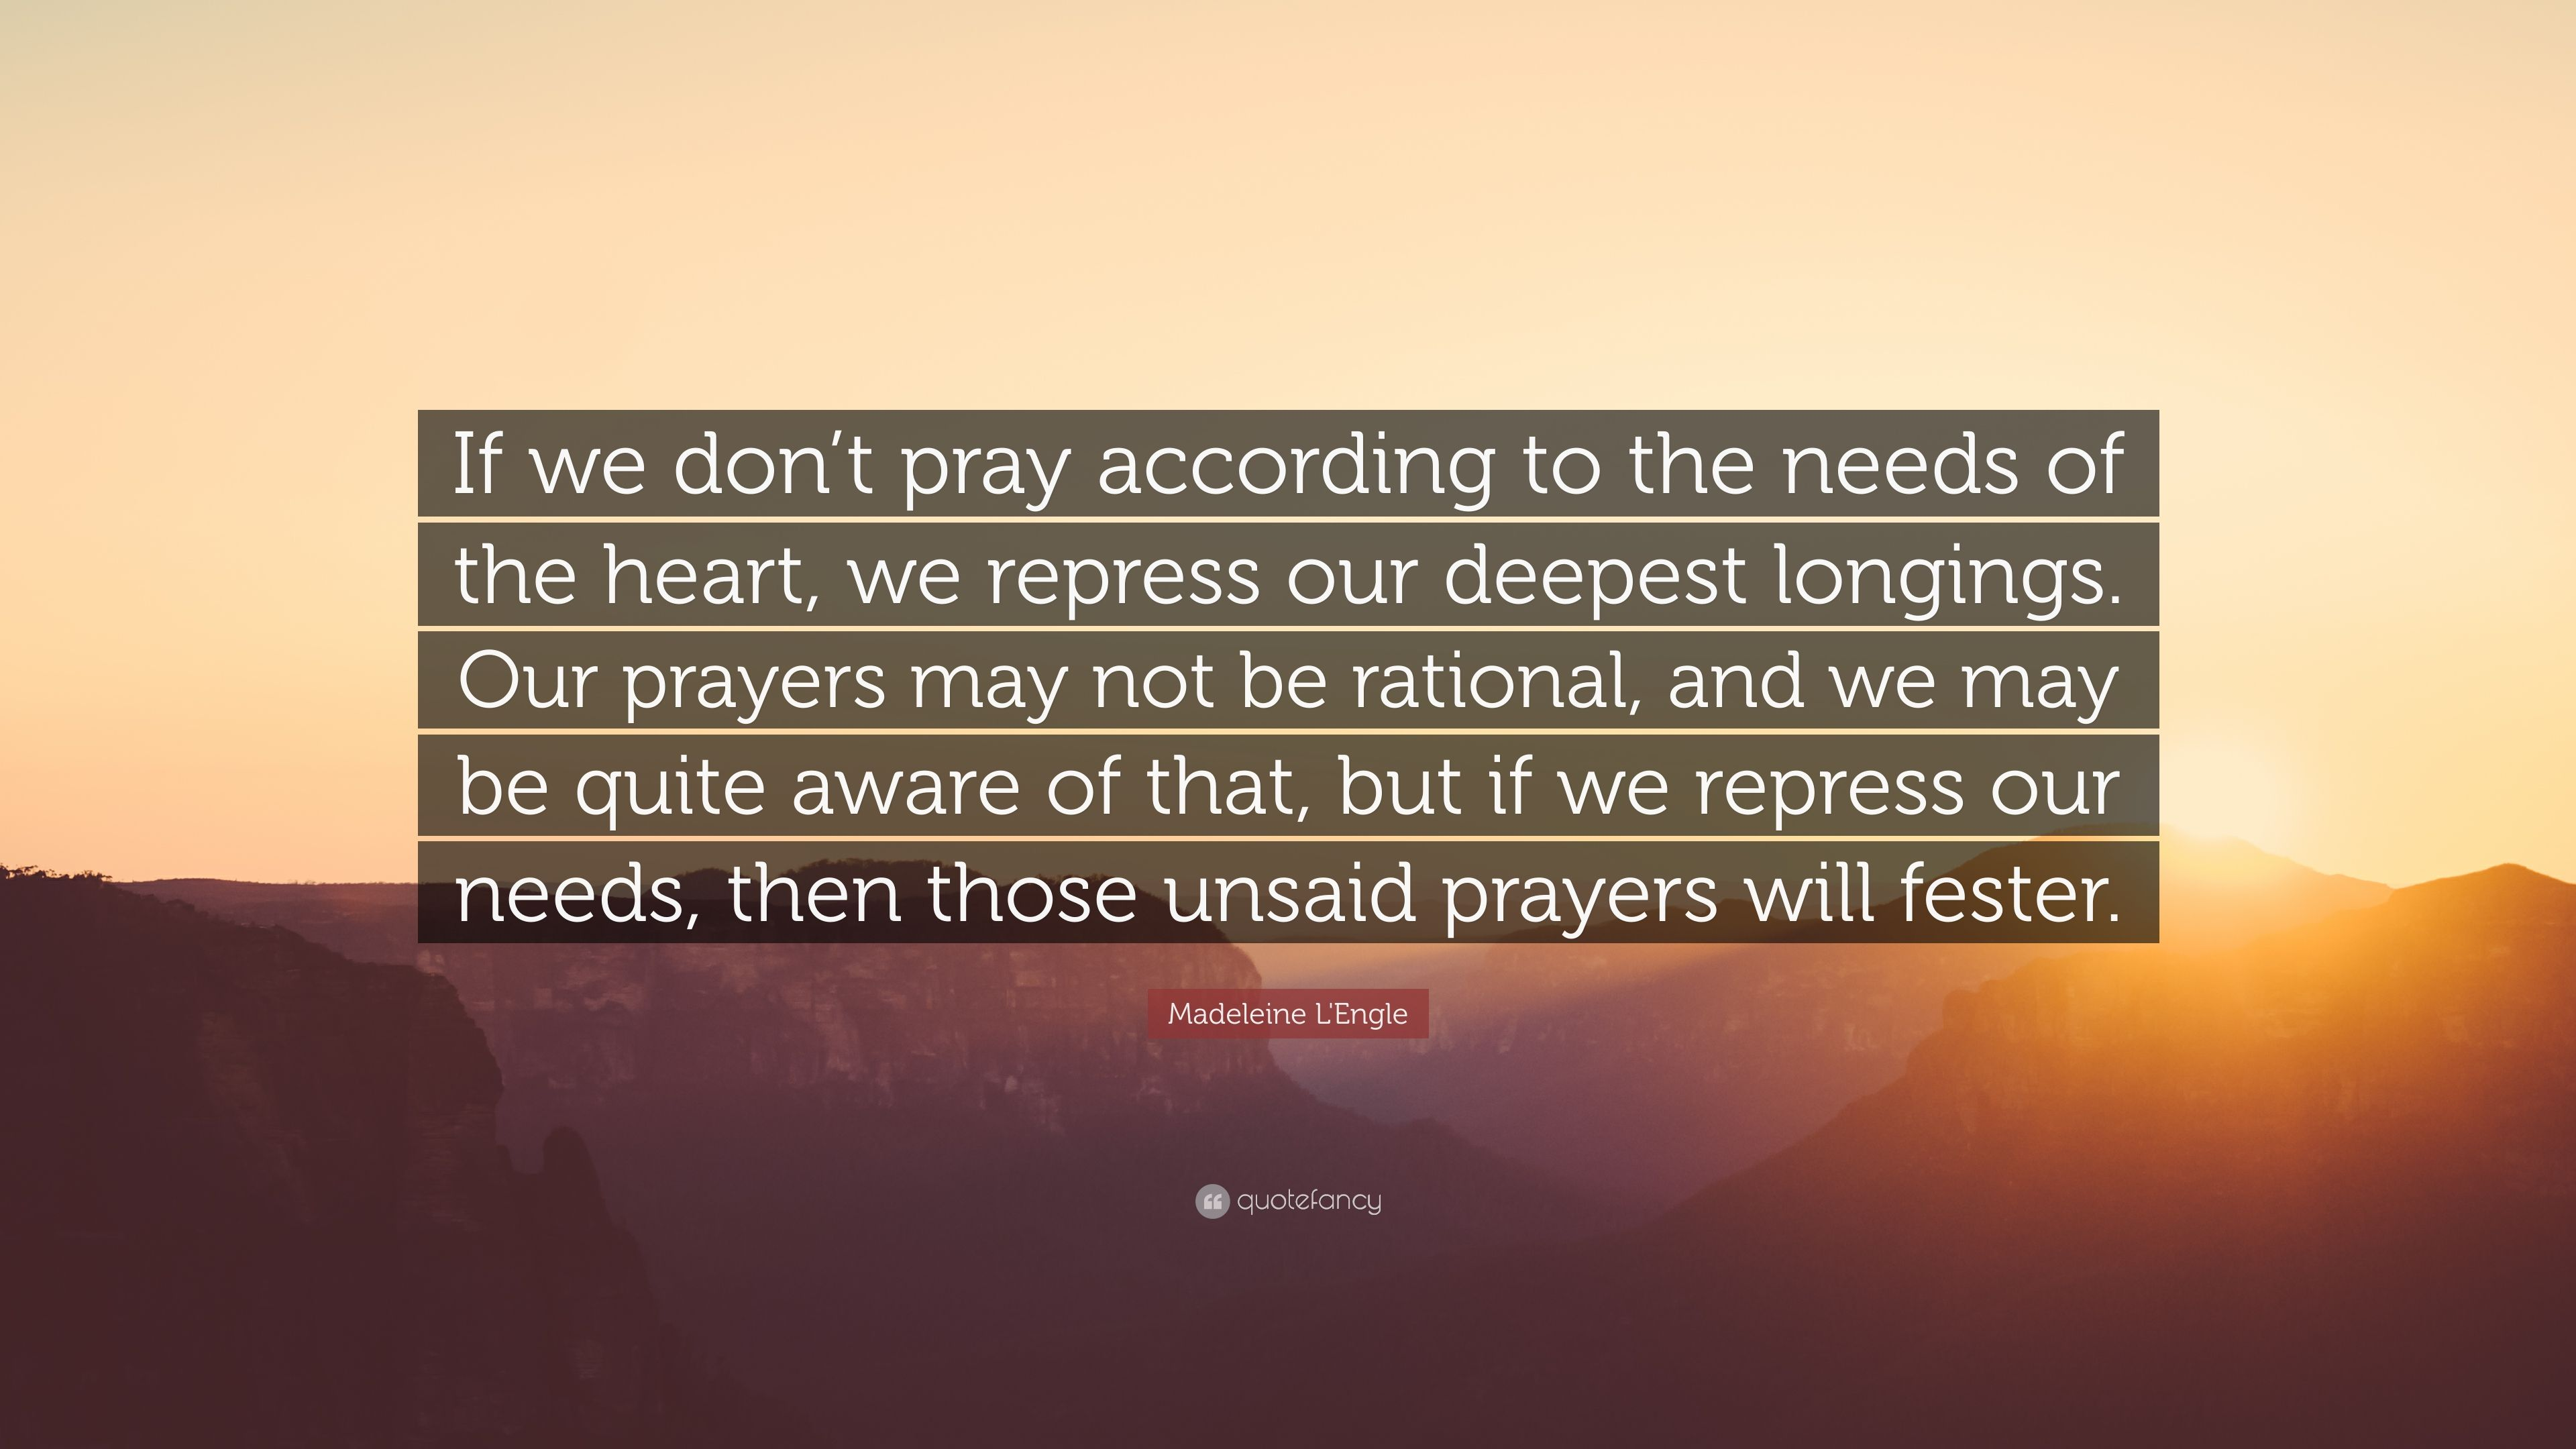 Unsaid prayers photo